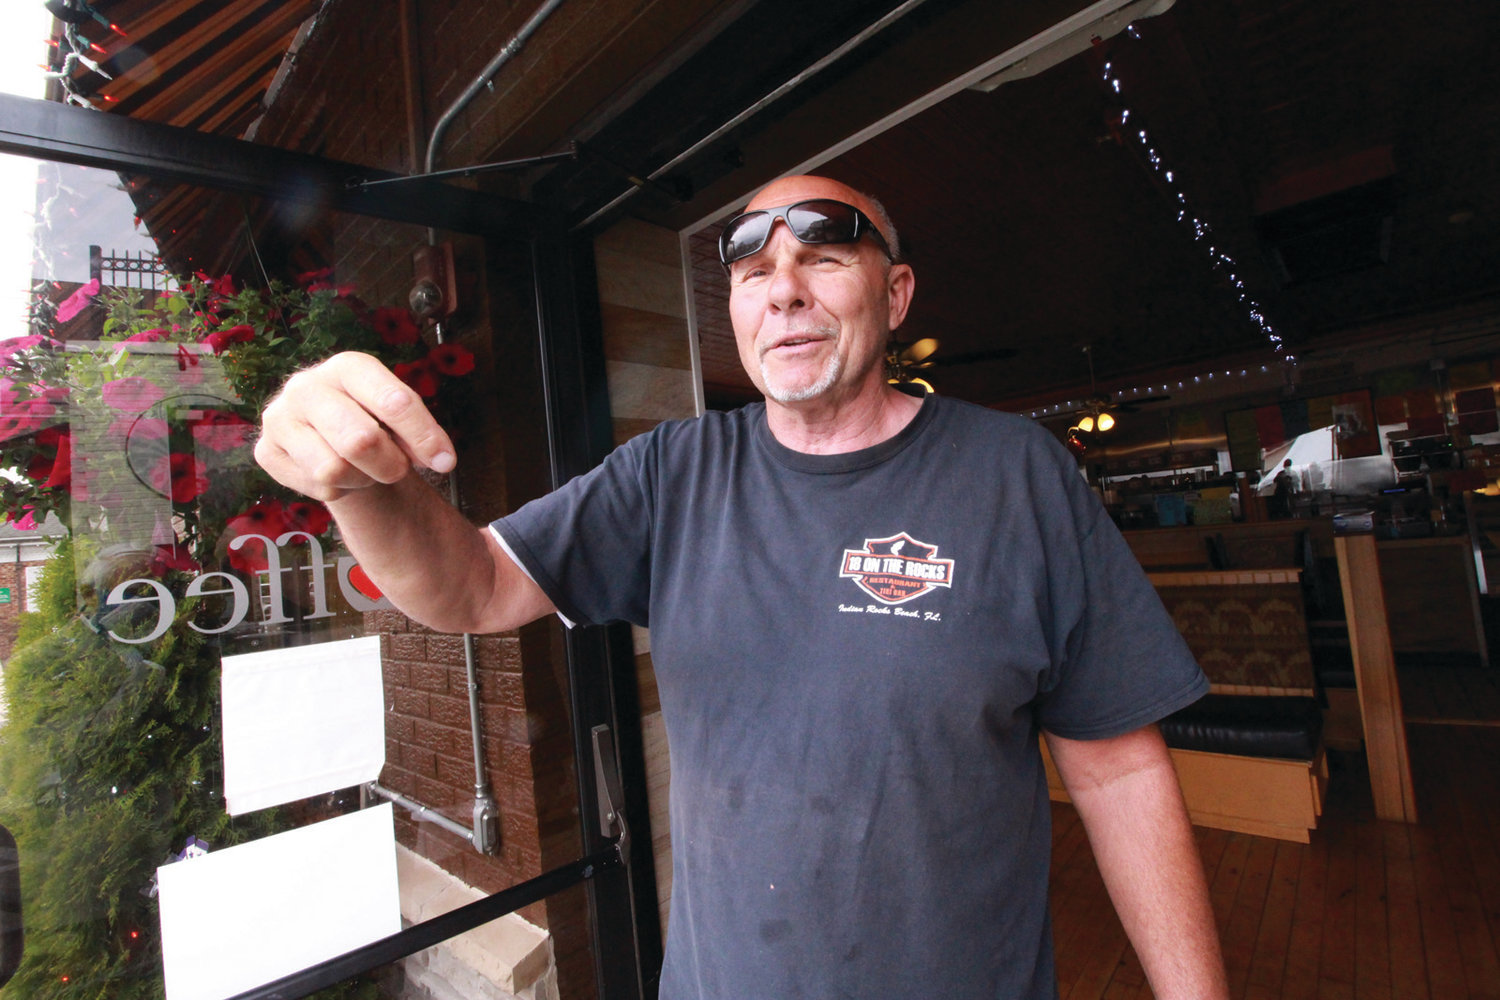 DELIGHTED TO SEE PEOPLE: Bagels Express Deli & Café co-owner Ray Verrocchio isn't troubled that he's losing some parking so that Revolution and Fellini's Pizzeria can offer outside dining in tents.